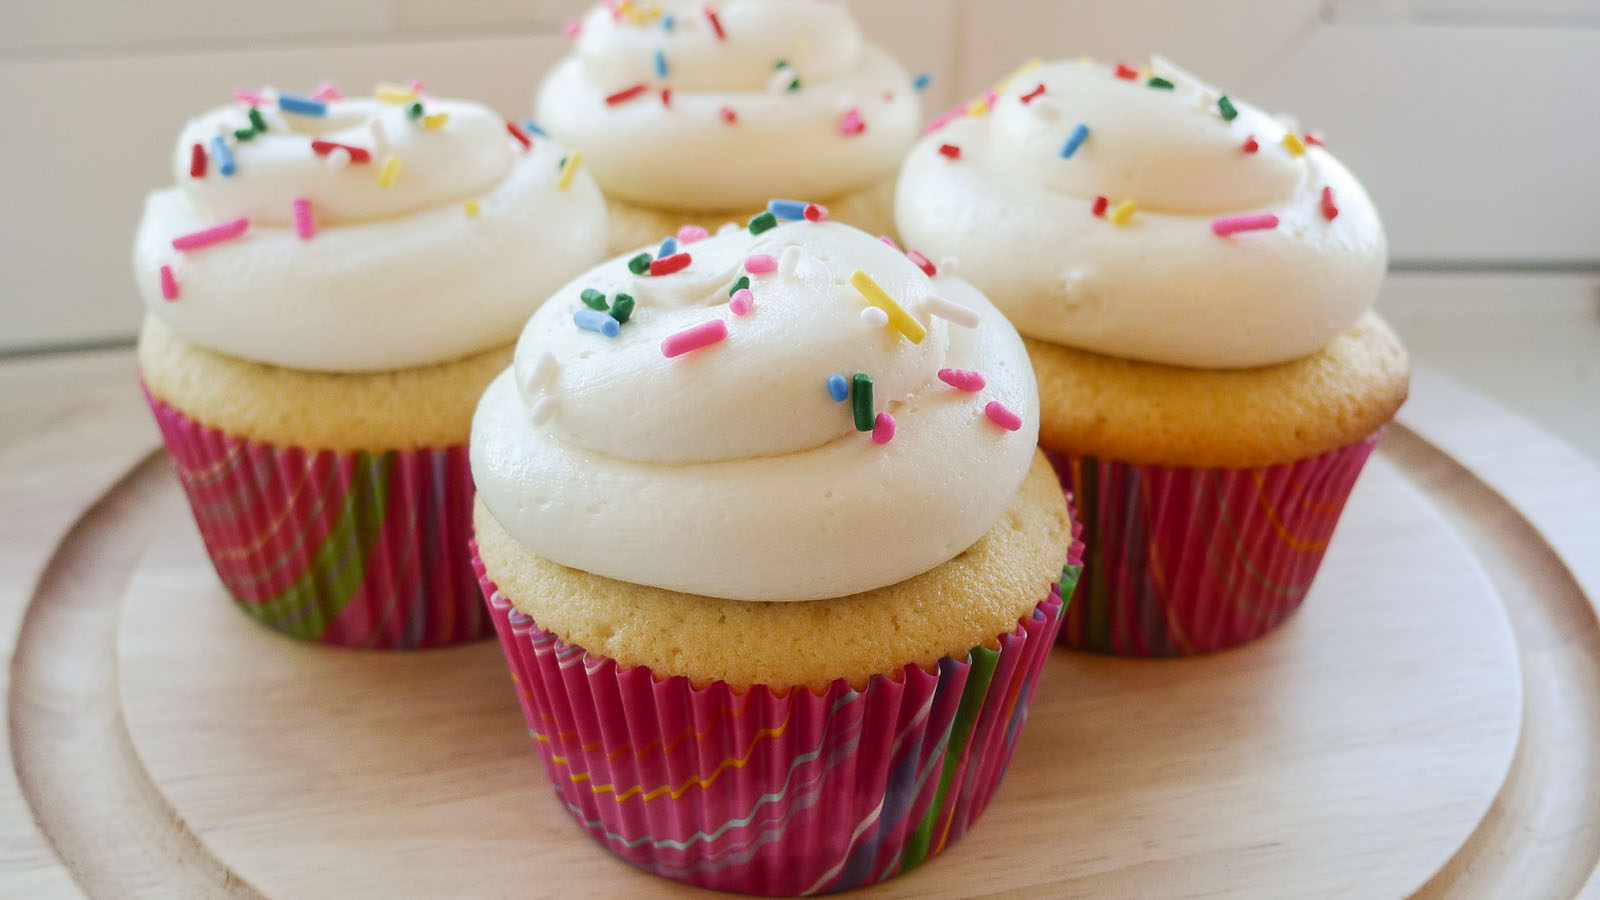 Simply Delicious : Classic Butter Cupcakes With Whipped